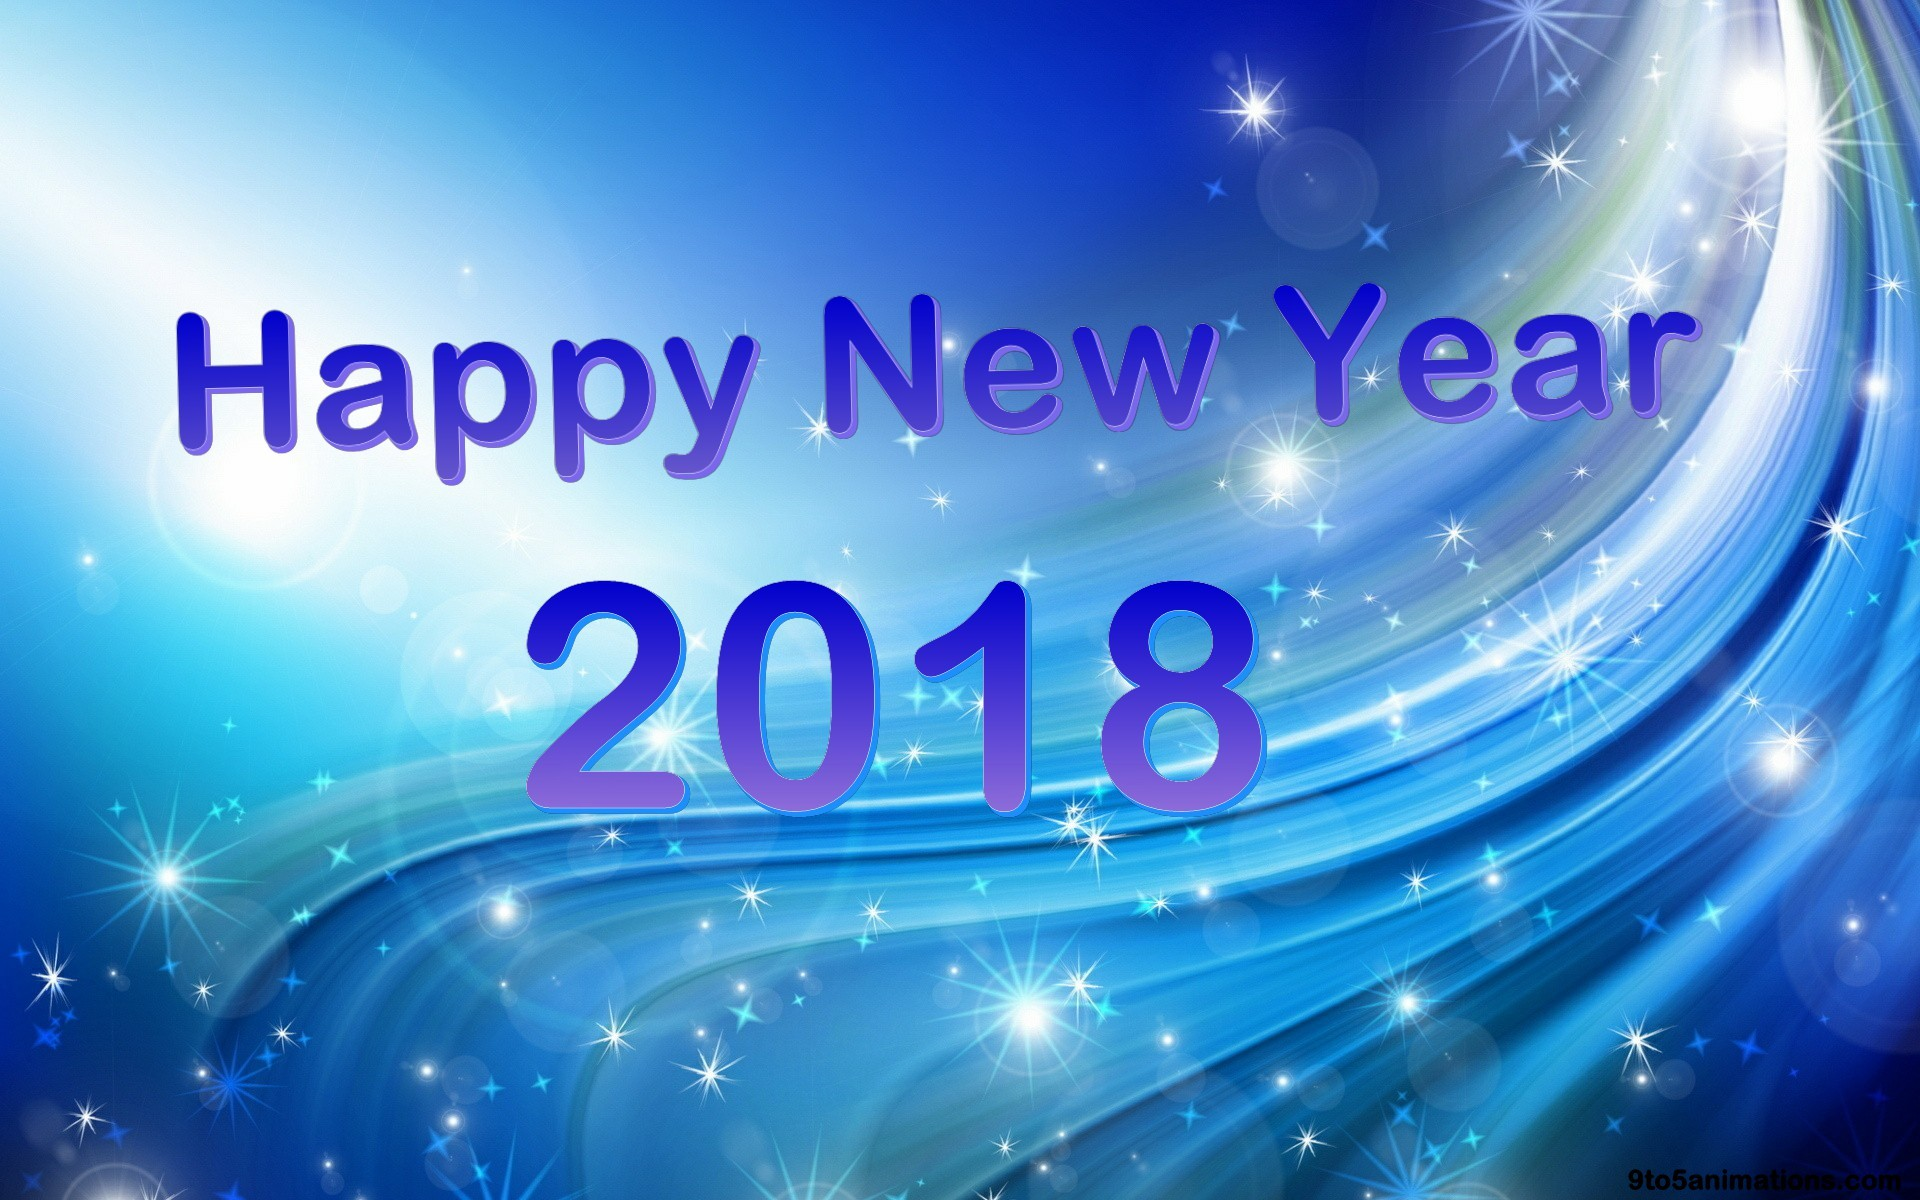 Computer Wallpaper New Year 2018 (68+ Images